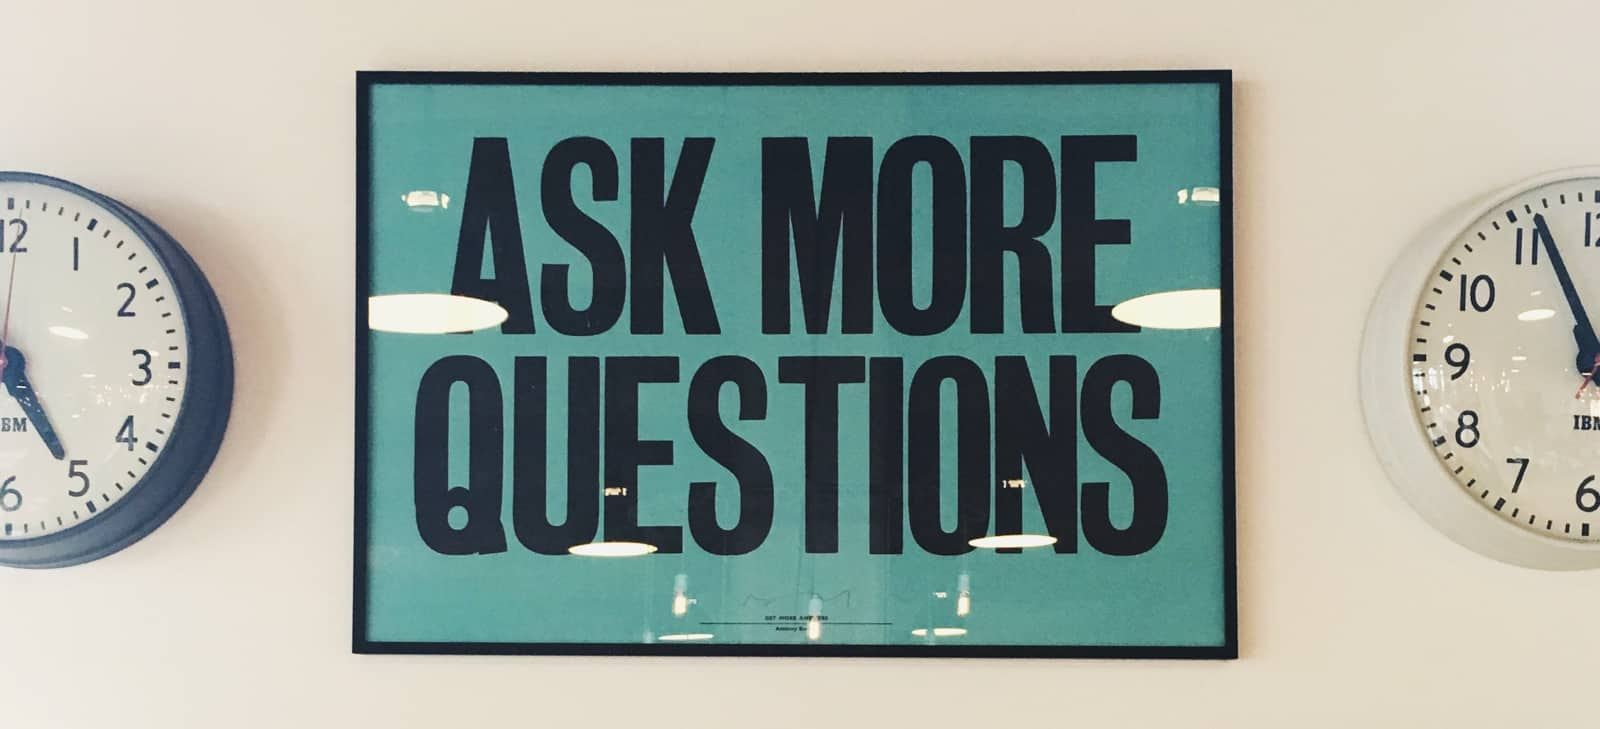 ask more questions poster with clock on each side